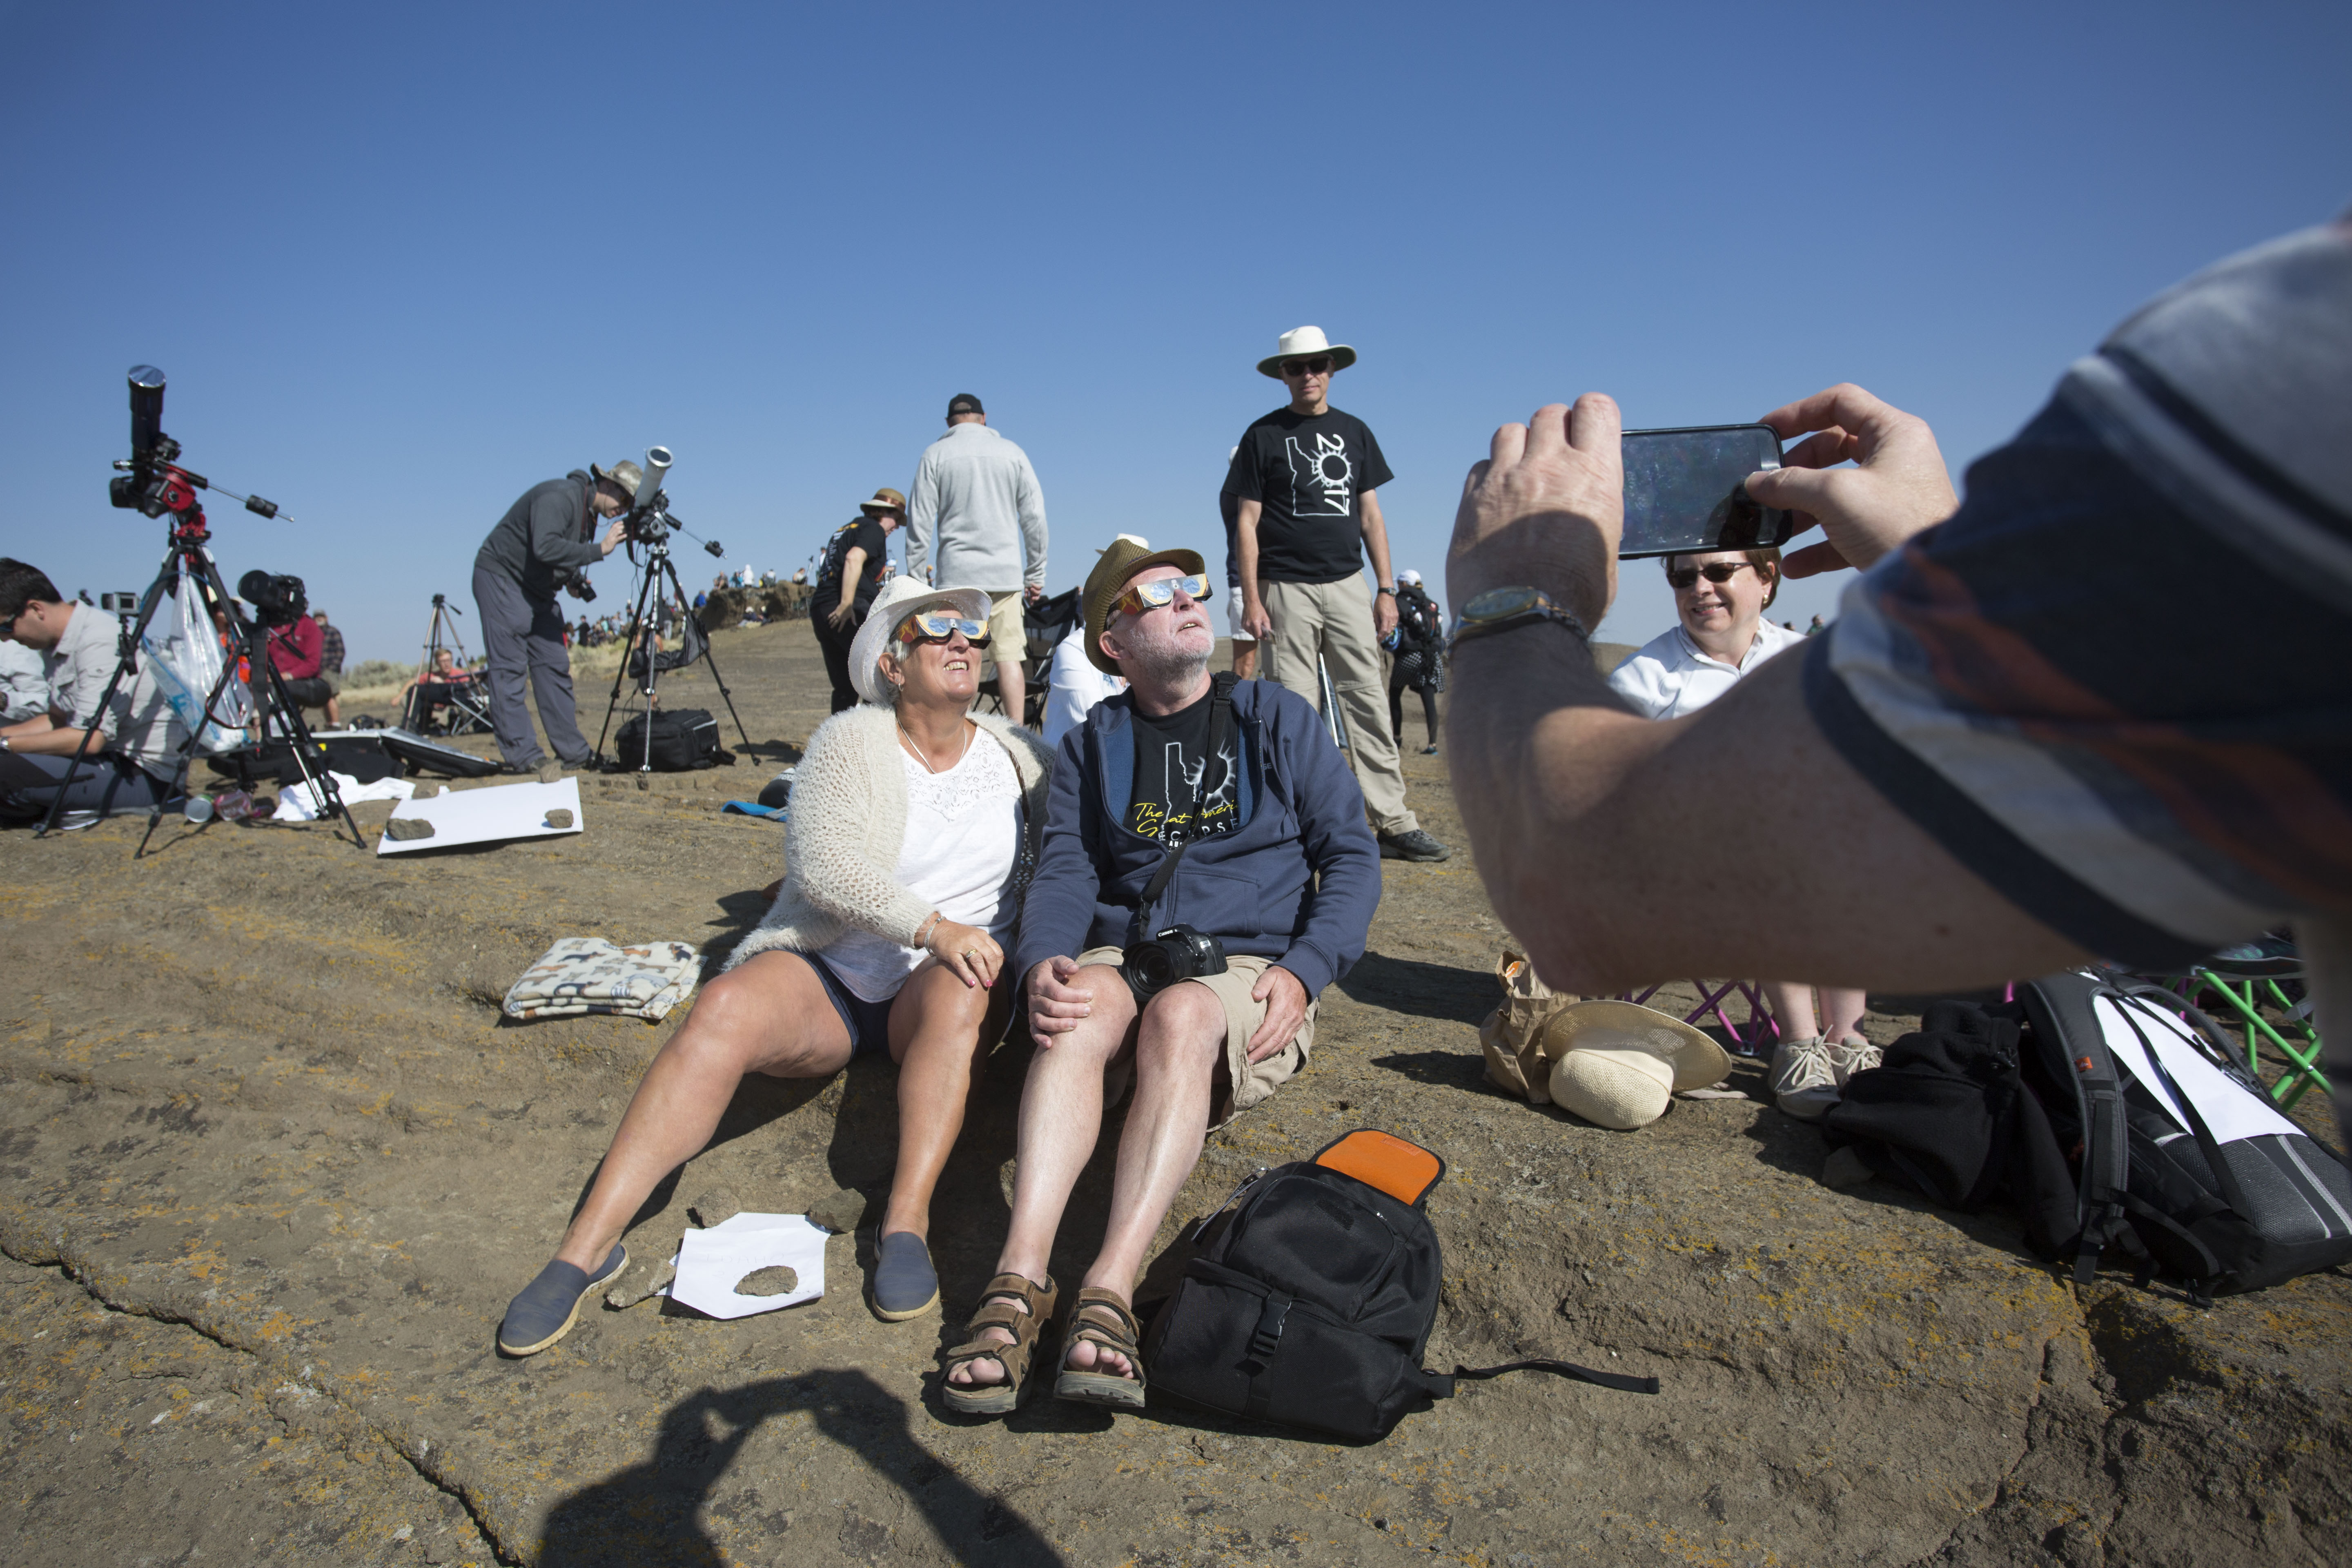 MENAN, ID - AUGUST 21: Angela and Chris Willis-Richards of London get their photo taken as they wear eclipse glasses on Menan Butte to watch the eclipse on August 21, 2017 in Menan, Idaho. Millions of people have flocked to areas of the U.S. that are in the  path of totality  in order to experience a total solar eclipse. (Photo by Natalie Behring/Getty Images)